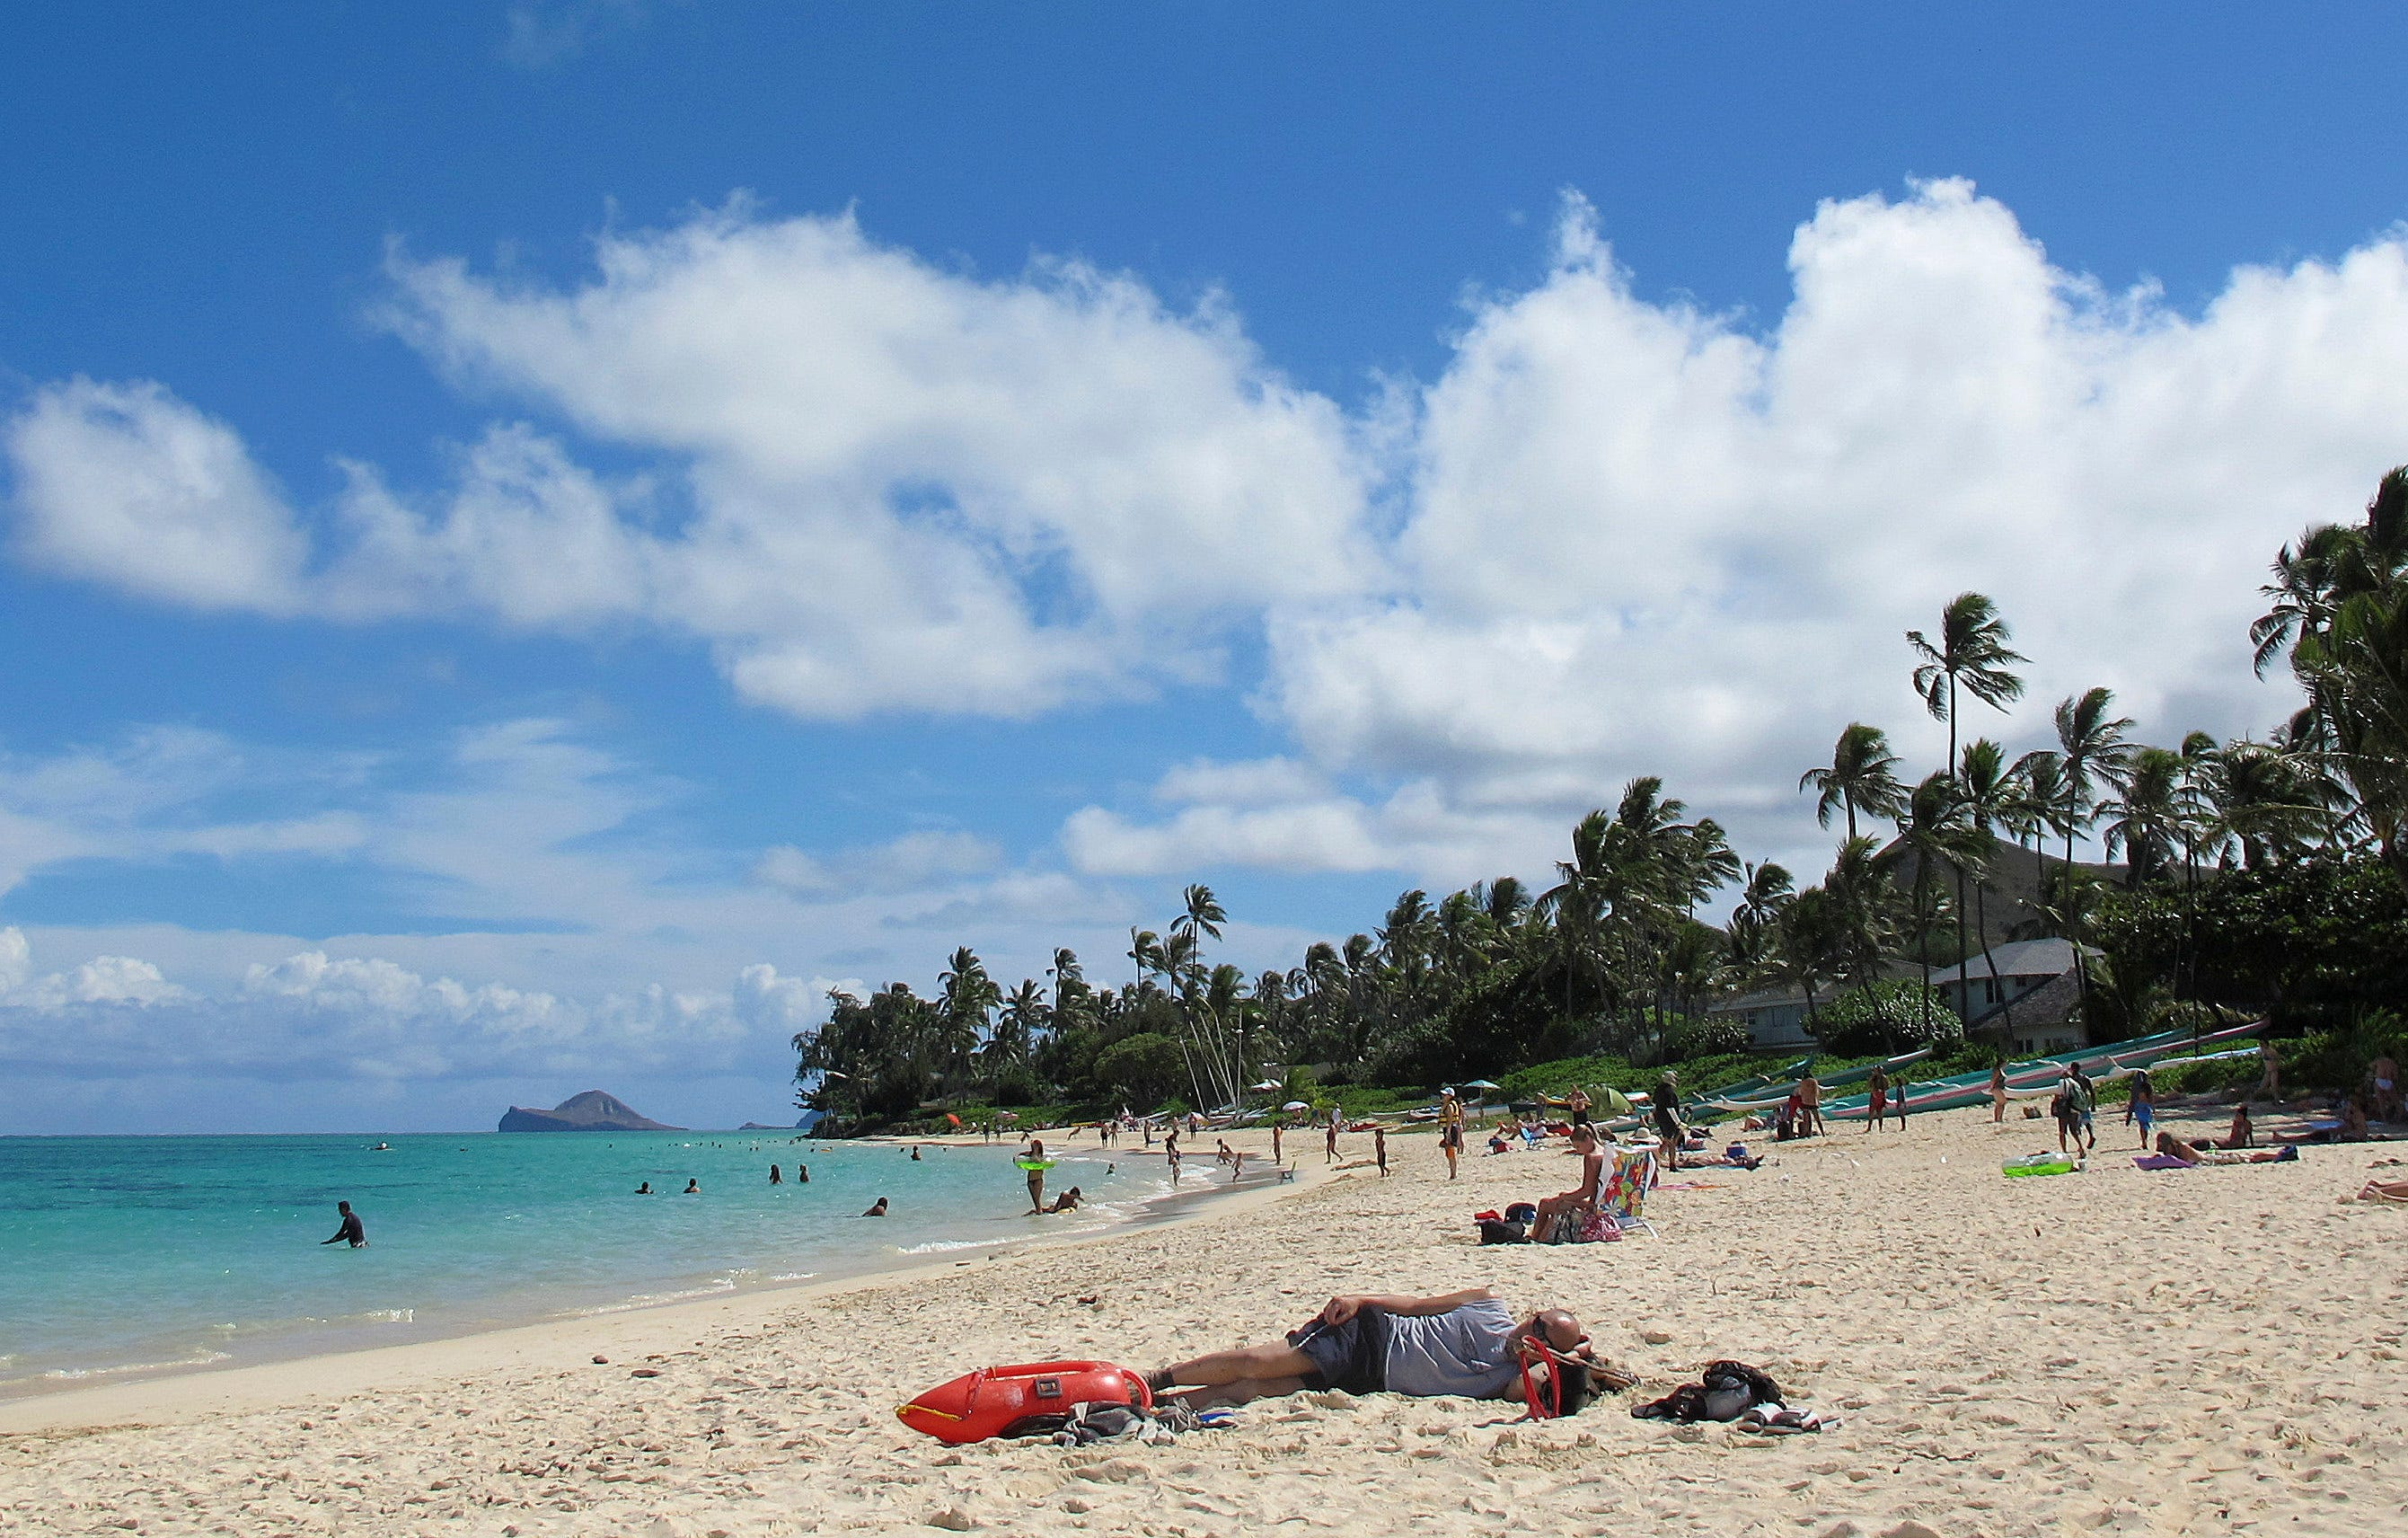 Ready for some sun? Hawaii governor welcomes tourists as COVID cases, hospitalizations drop